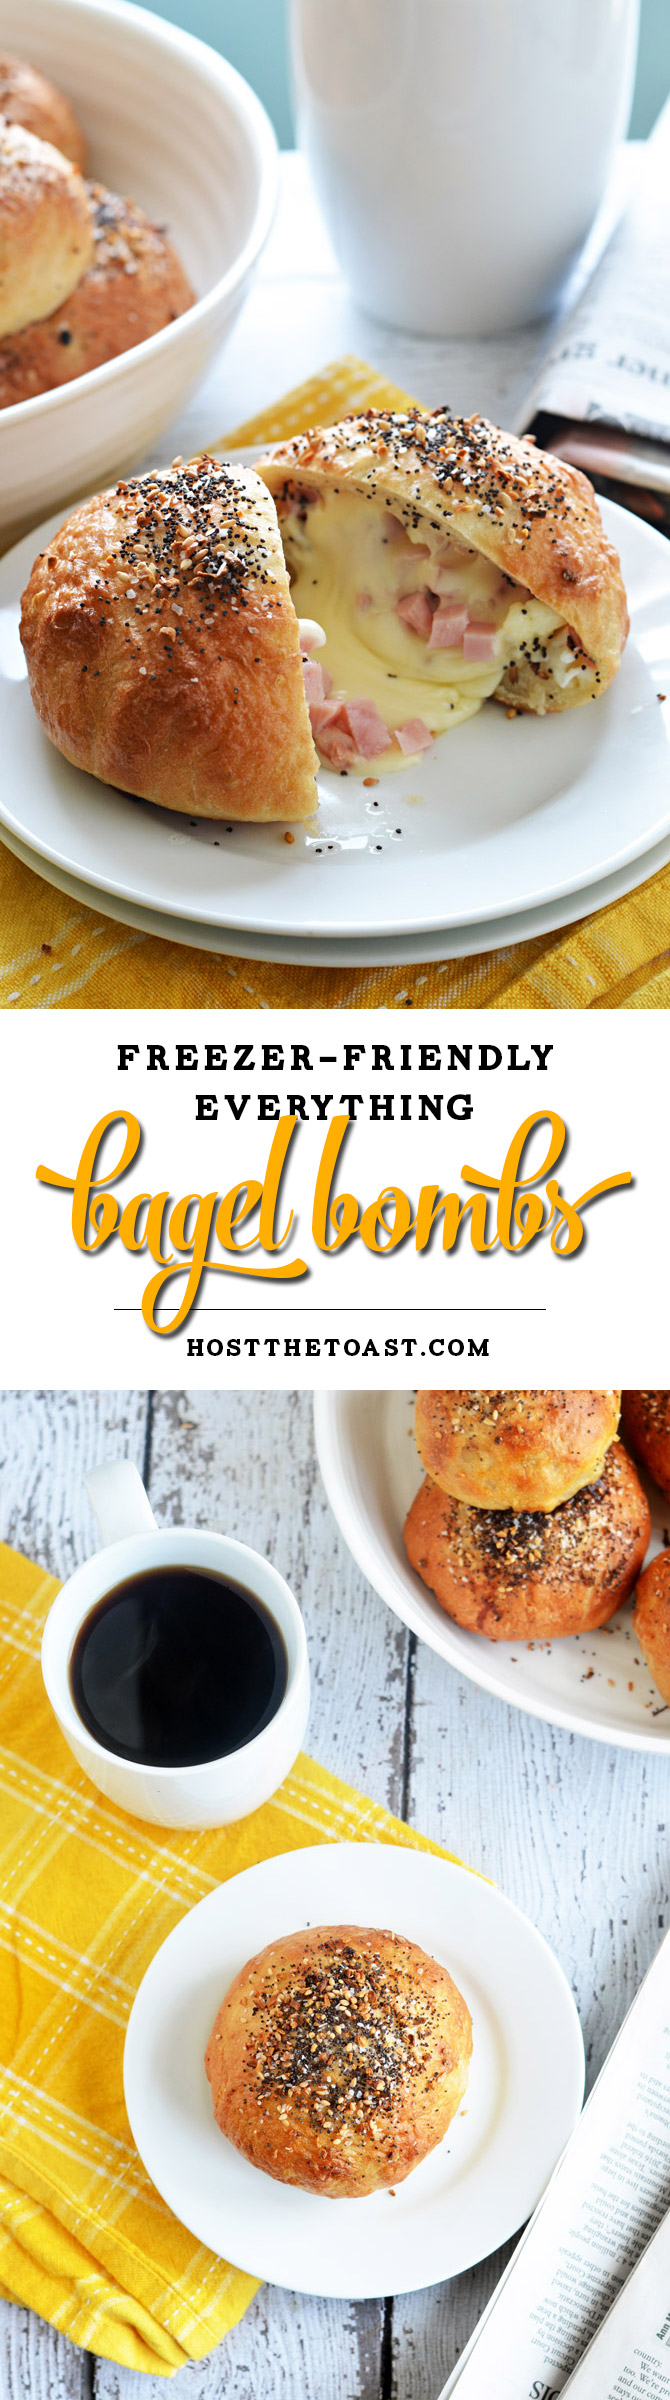 Freezer-Friendly Everything Bagel Bombs. Cheese, ham, and eggs are stuffed into bagel-ified dough for the perfect reheatable breakfast for busy mornings. Only 240 calories per serving! | hostthetoast.com